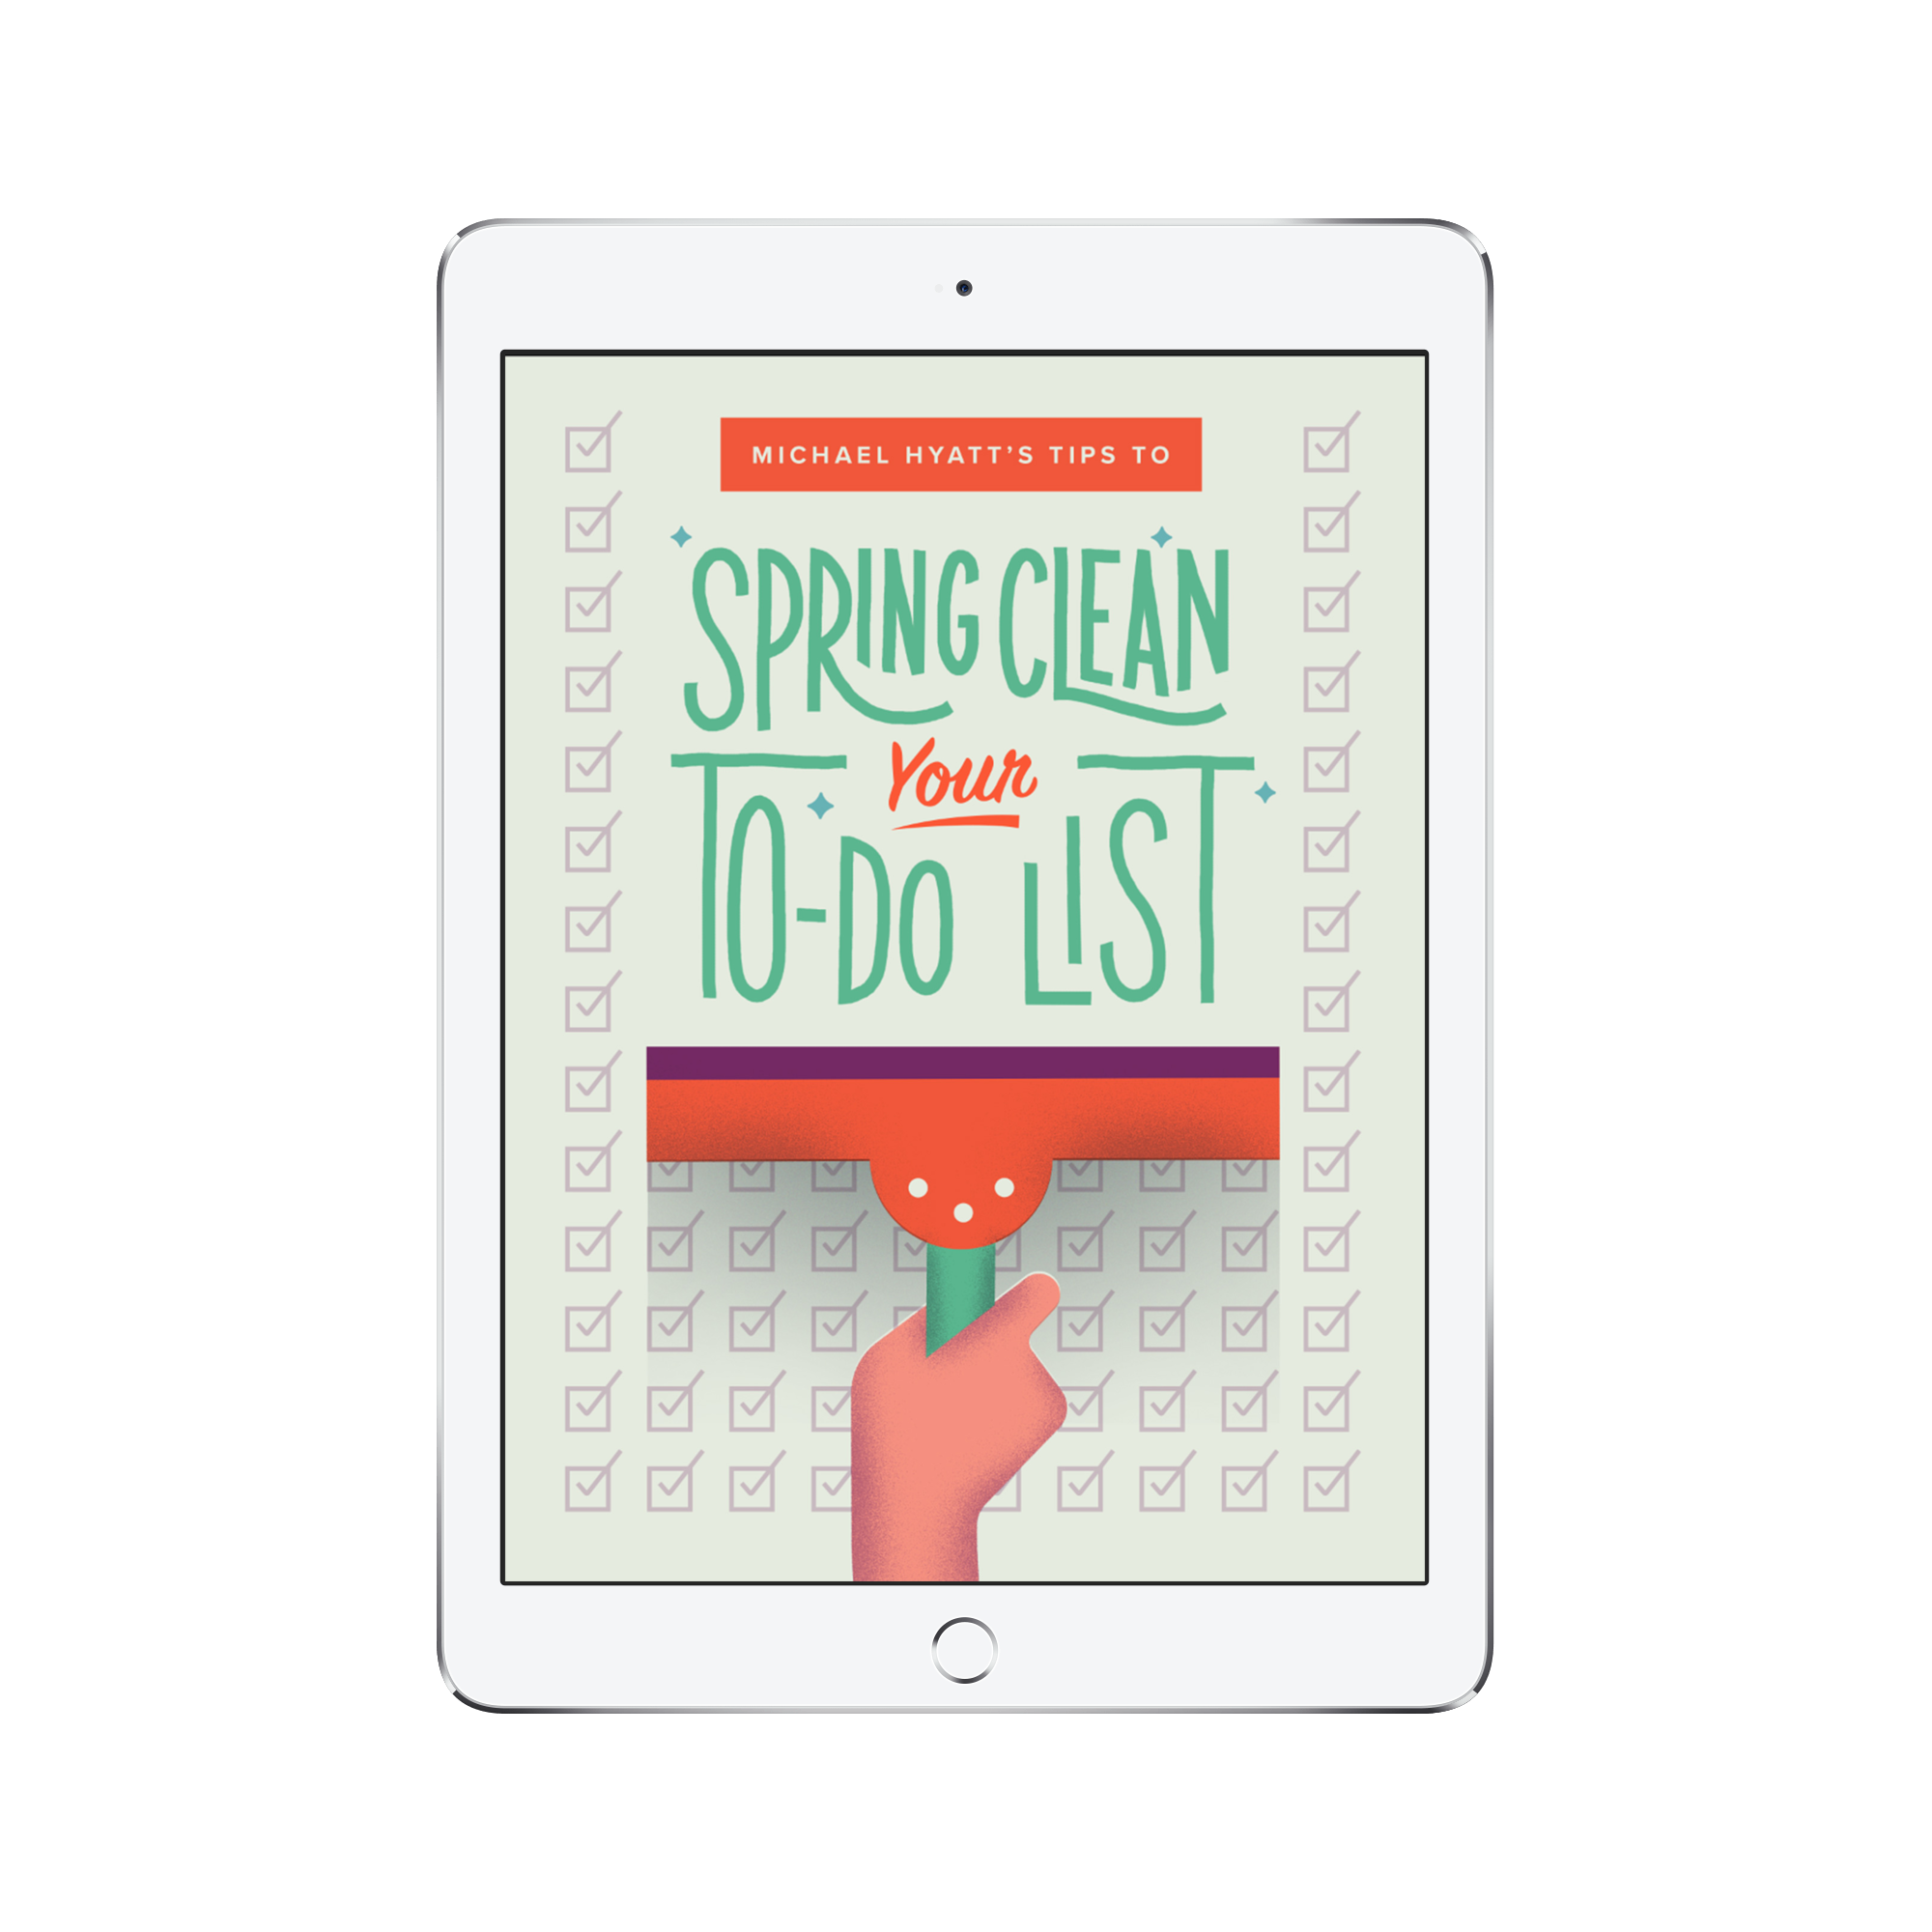 Spring Clean Your To-Do List